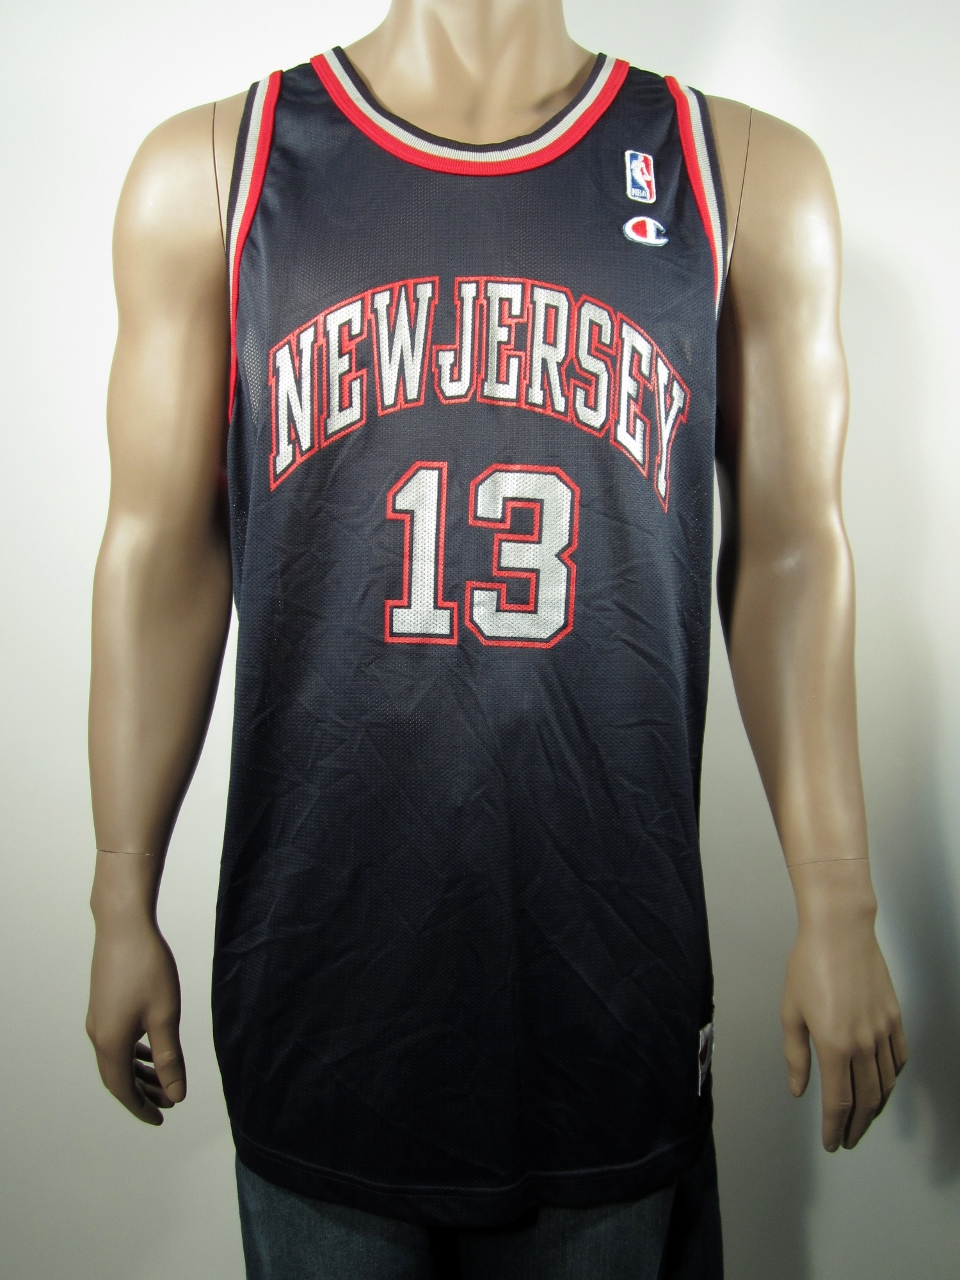 2c0d90524b7 Kendall Gill New Jersey Nets Champion Jersey 52 NWT on Storenvy